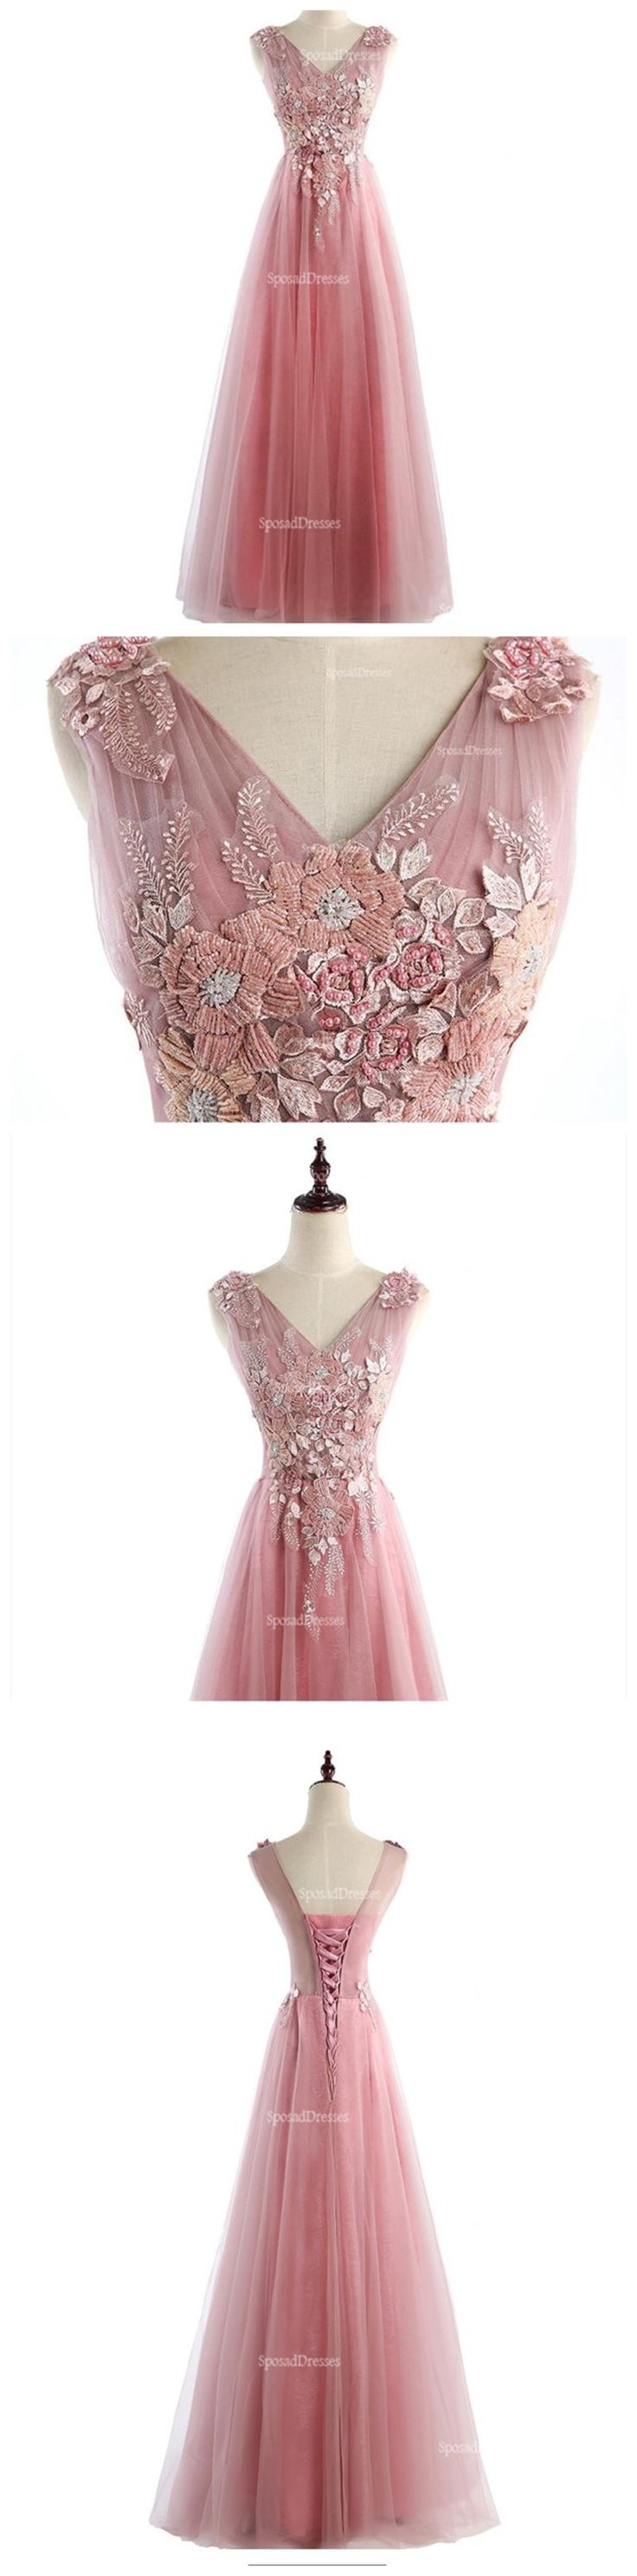 Two Straps V Neckline Pink Lace Beaded Unique Long Evening Prom Dresses, Popular 2018 Party Prom Dresses, Custom Long Prom Dresses, Cheap Formal Prom Dresses, 17220